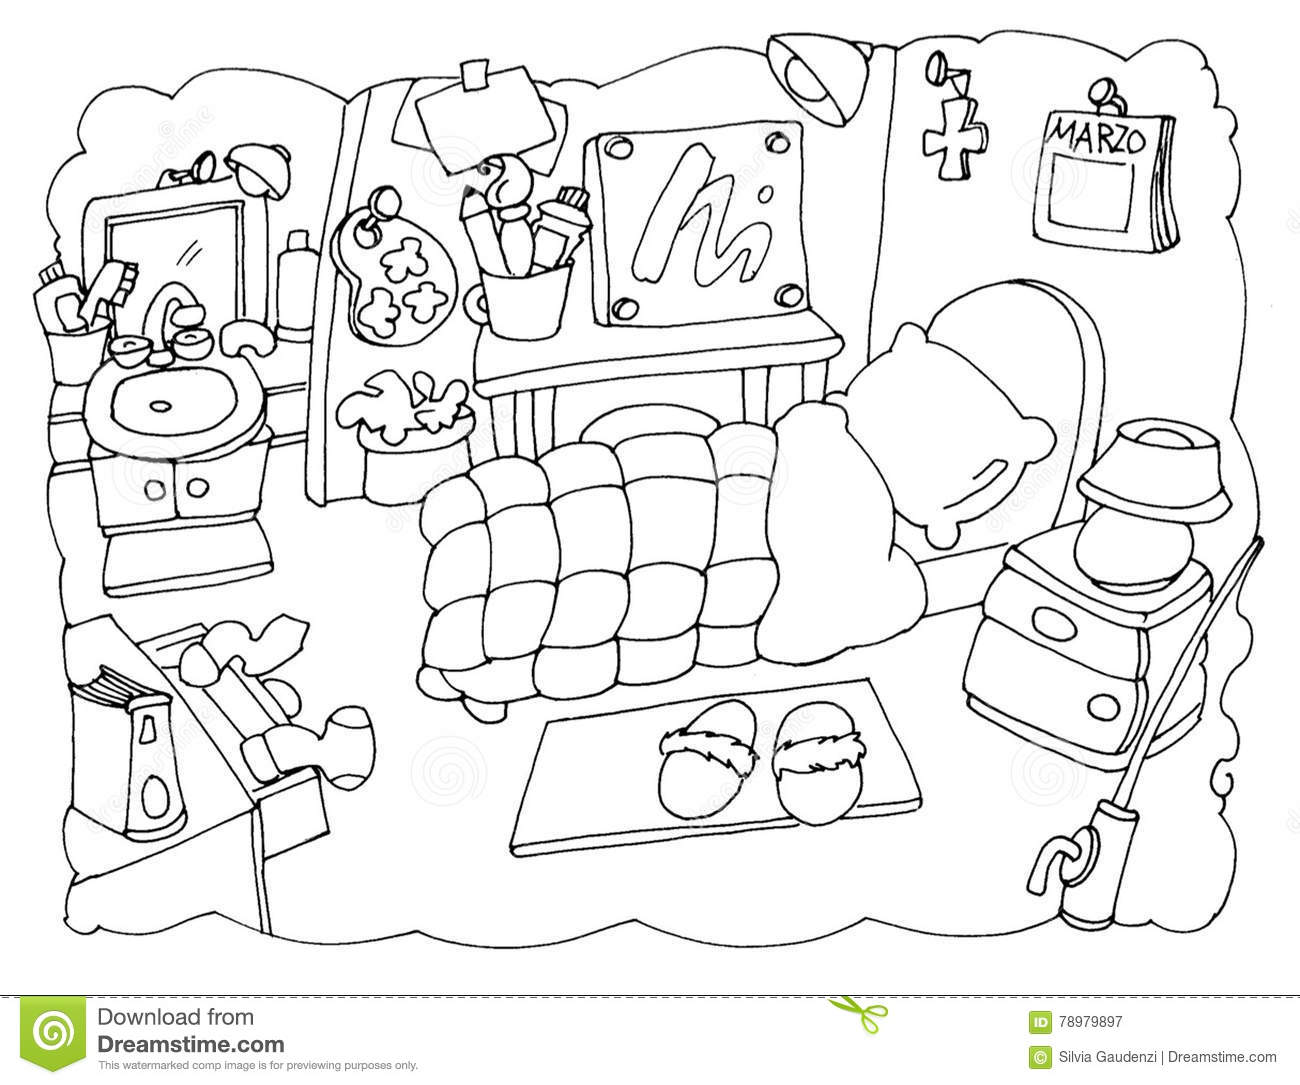 Bedroom Kids Pic Drawing Images Sketch Coloring Page